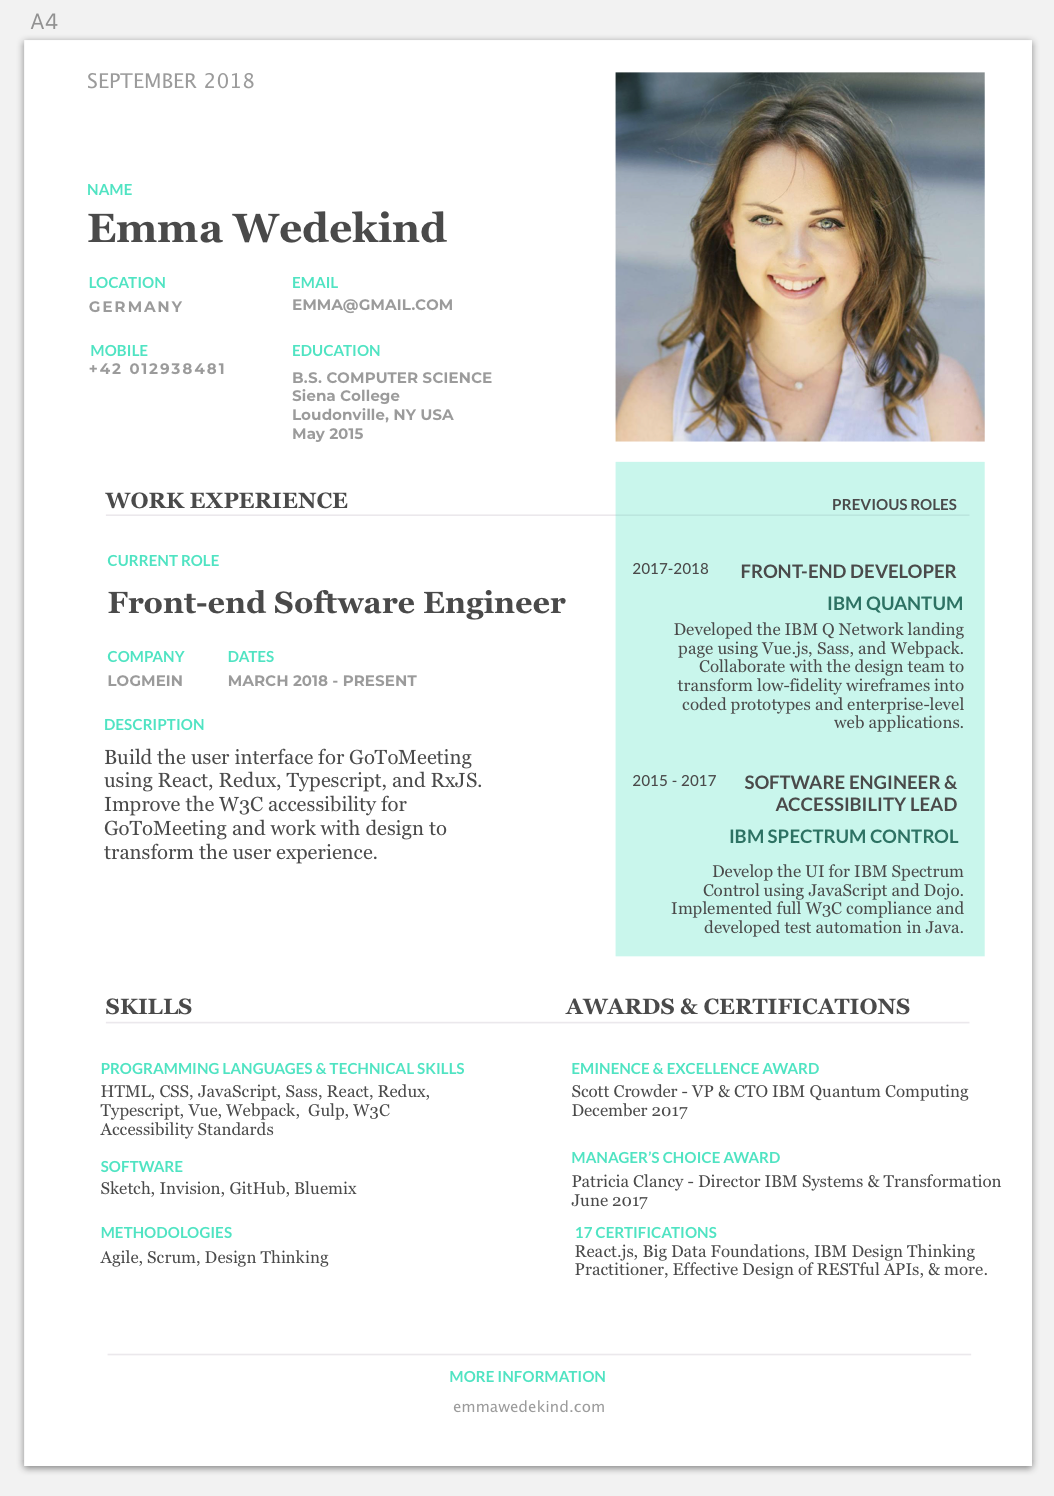 How To Write A Stand Out Technical Resume Gitconnected Com Blog